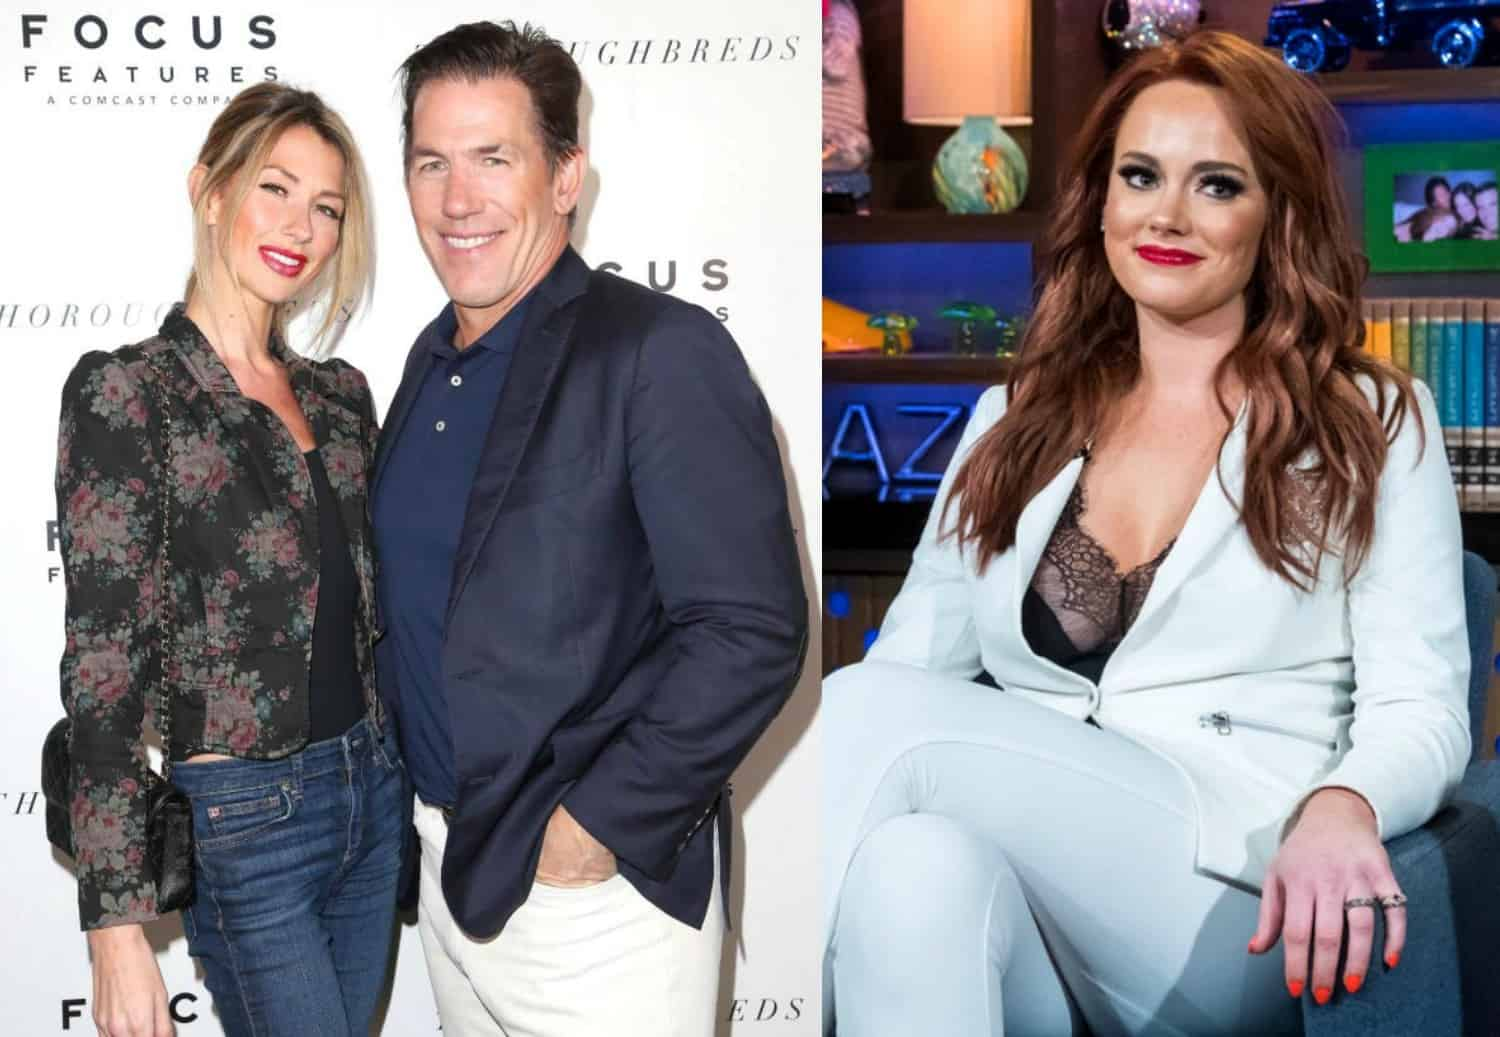 Southern Charm's Ashley Jacobs and Kathryn Dennis React to Thomas Ravenel Arrest